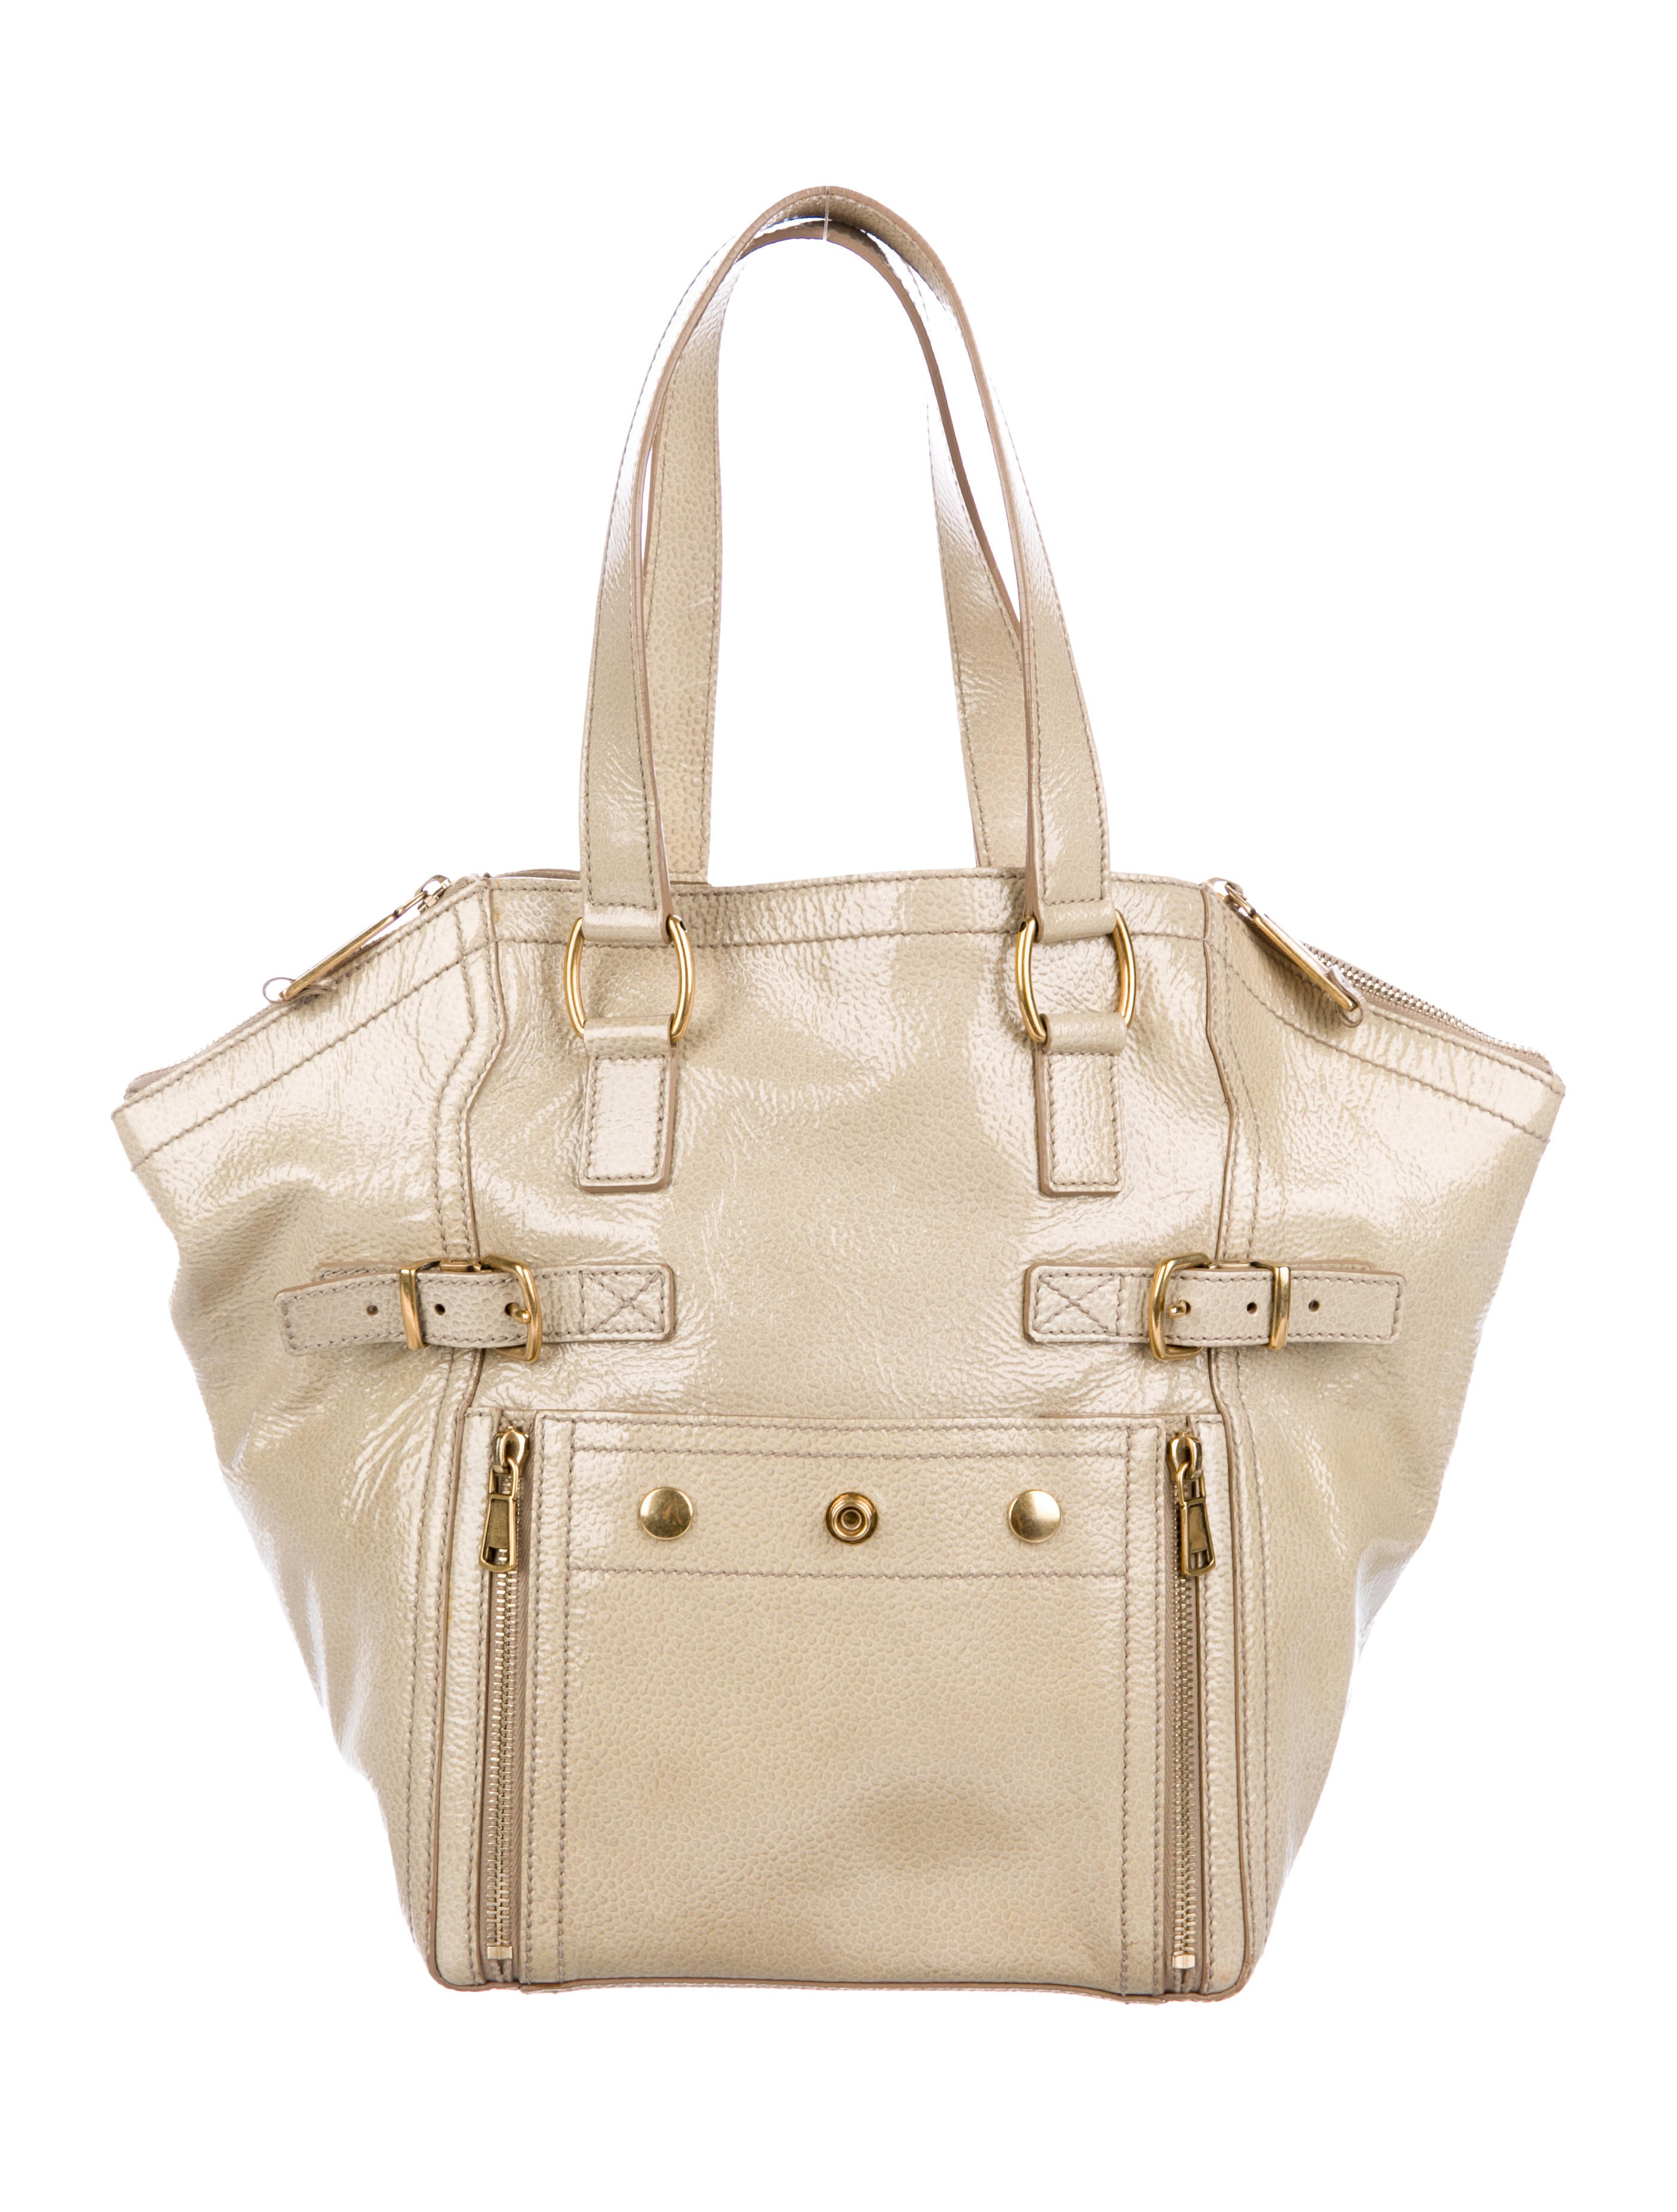 05e30fc07863 Yves Saint Laurent Patent Leather Small Downtown Bag. Patent Leather Small  Downtown ...